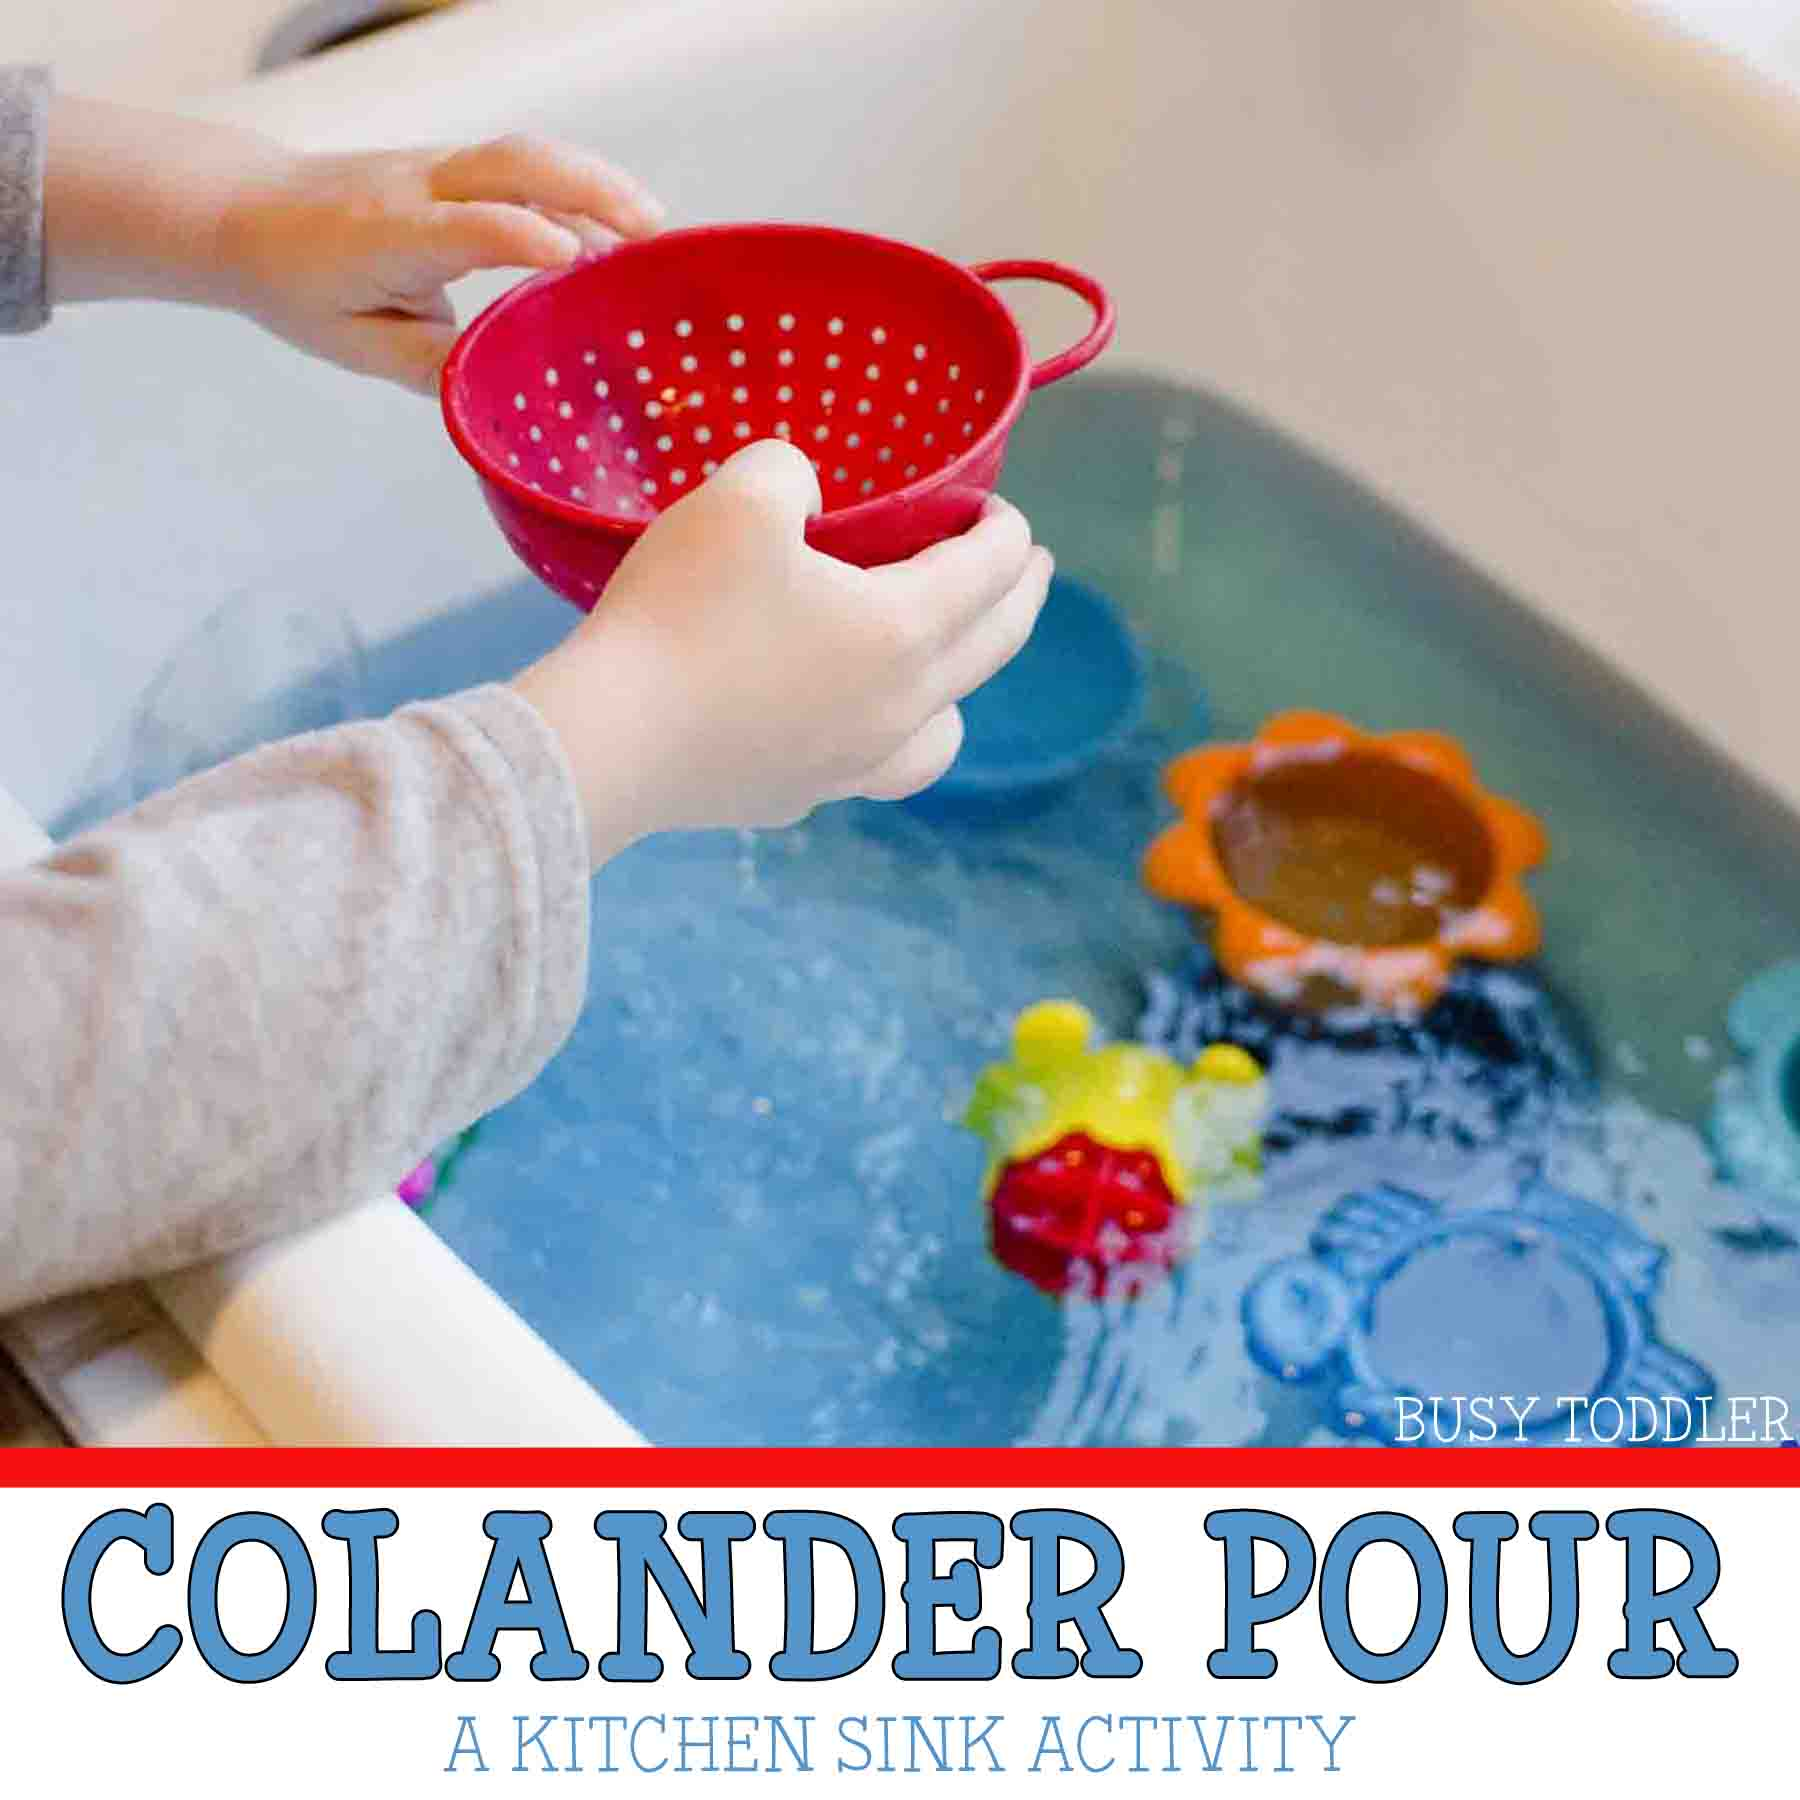 Colander Pour in the Kitchen Sink